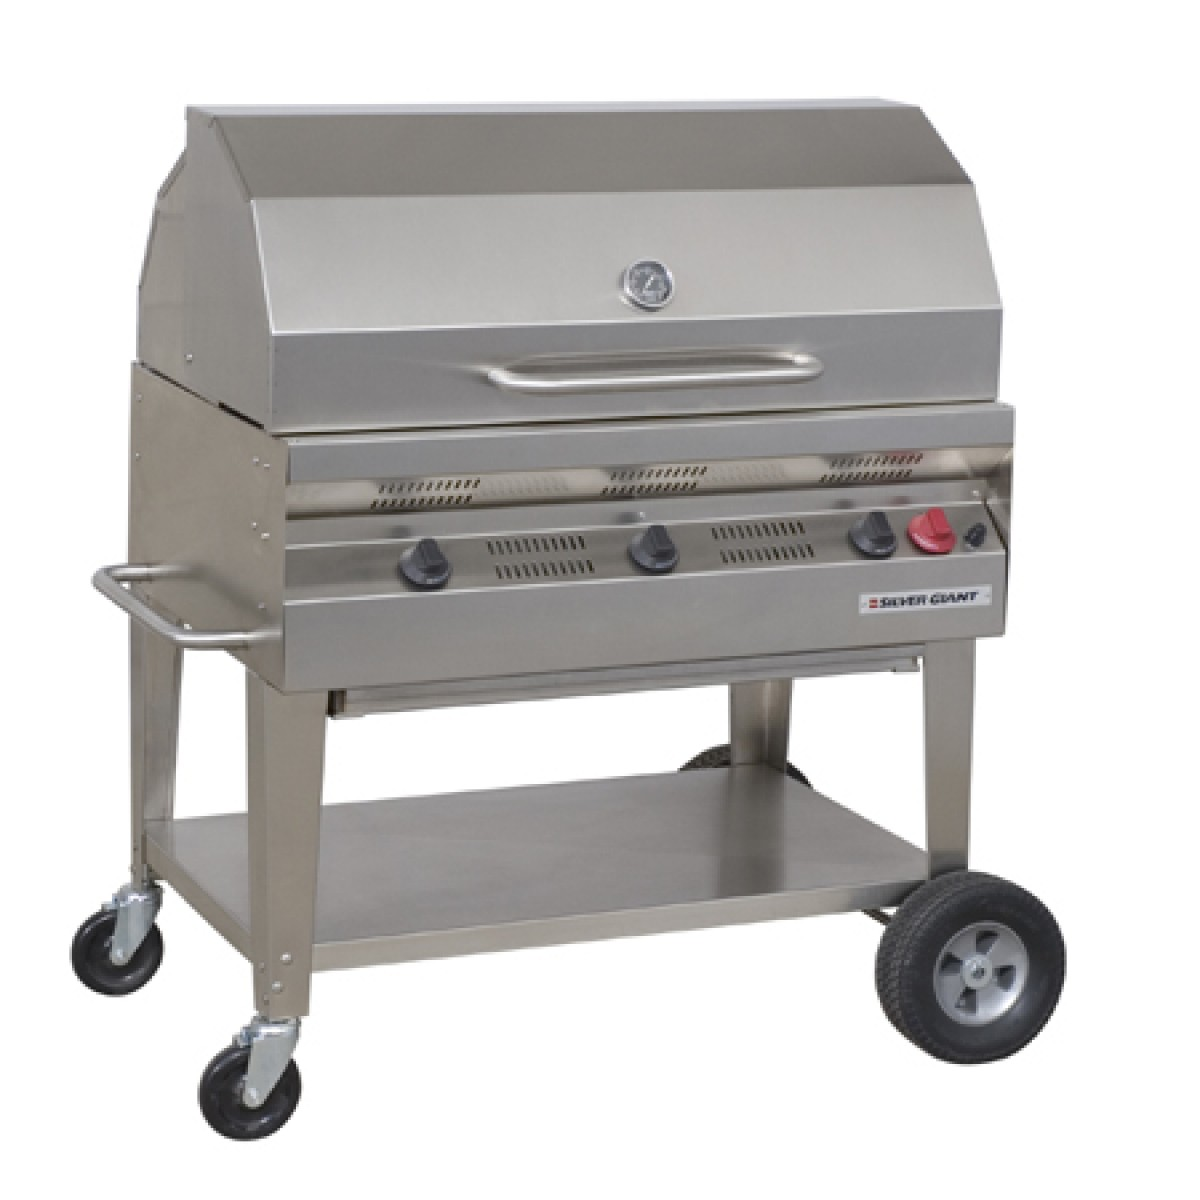 Flagro Silver Giant 60 Quot Commercial Lp Barbecue Grill At